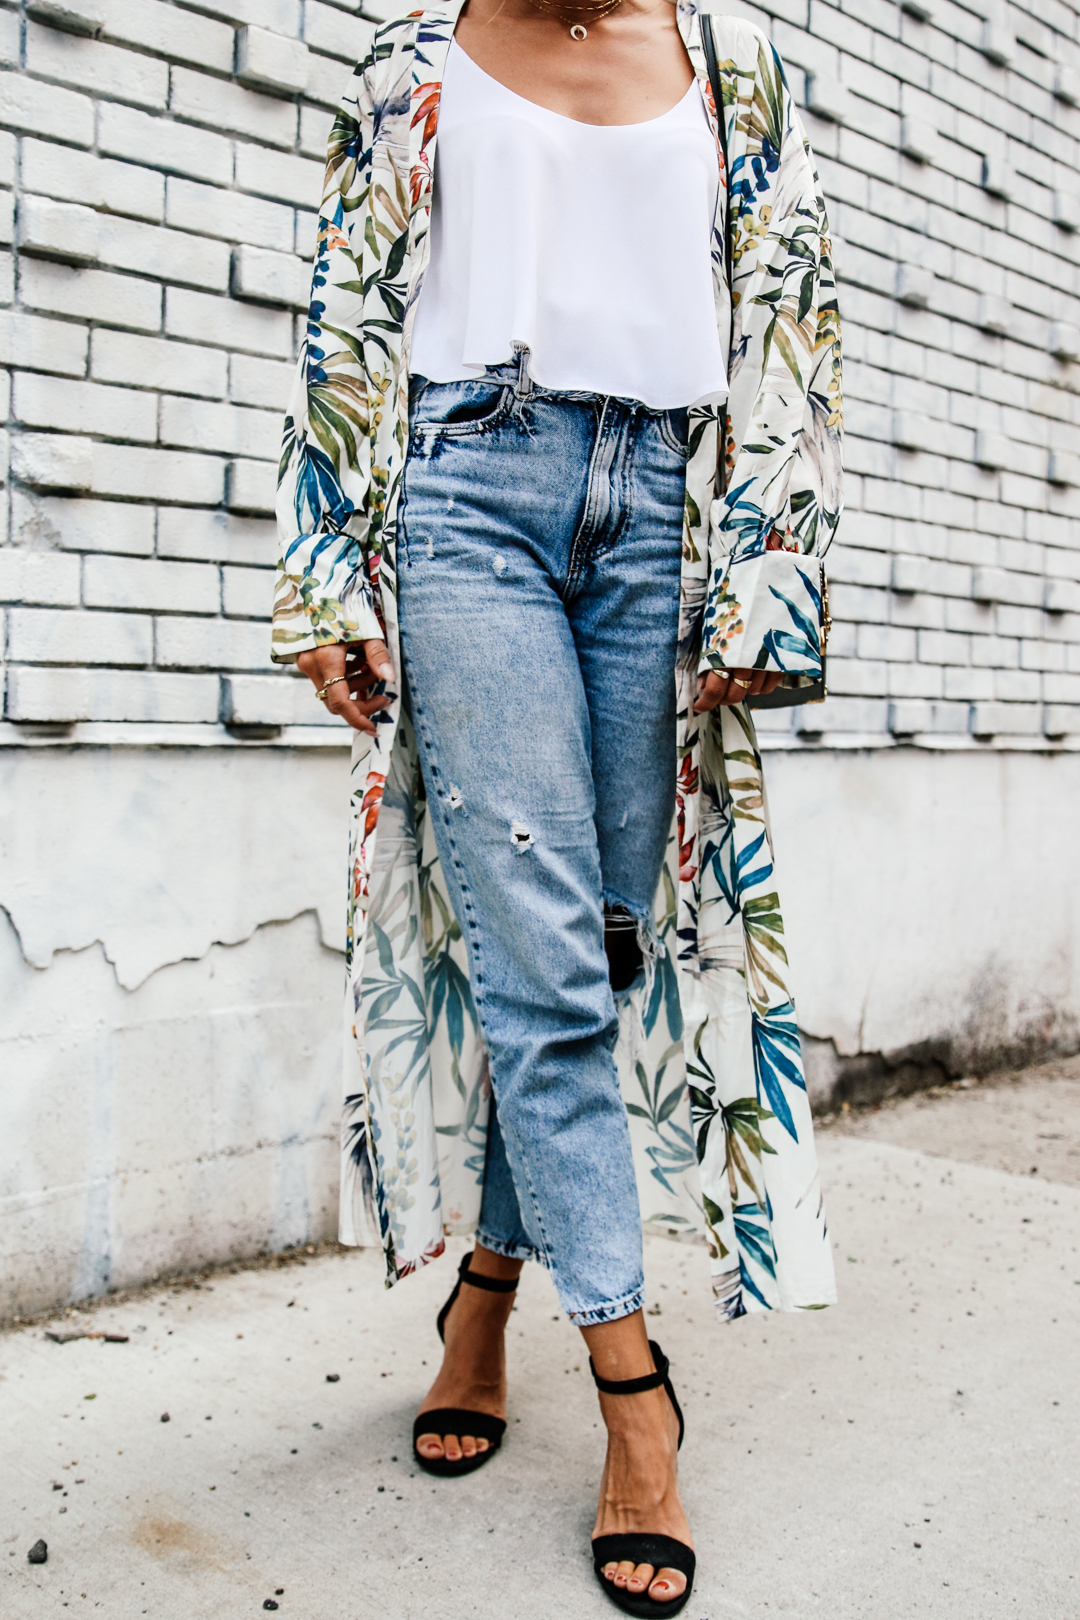 656c42d5d4 And of course, I don't want to leave you hanging and not write a single  word about this outfit – a tropical kimono combination (was is even a  surprise to ...